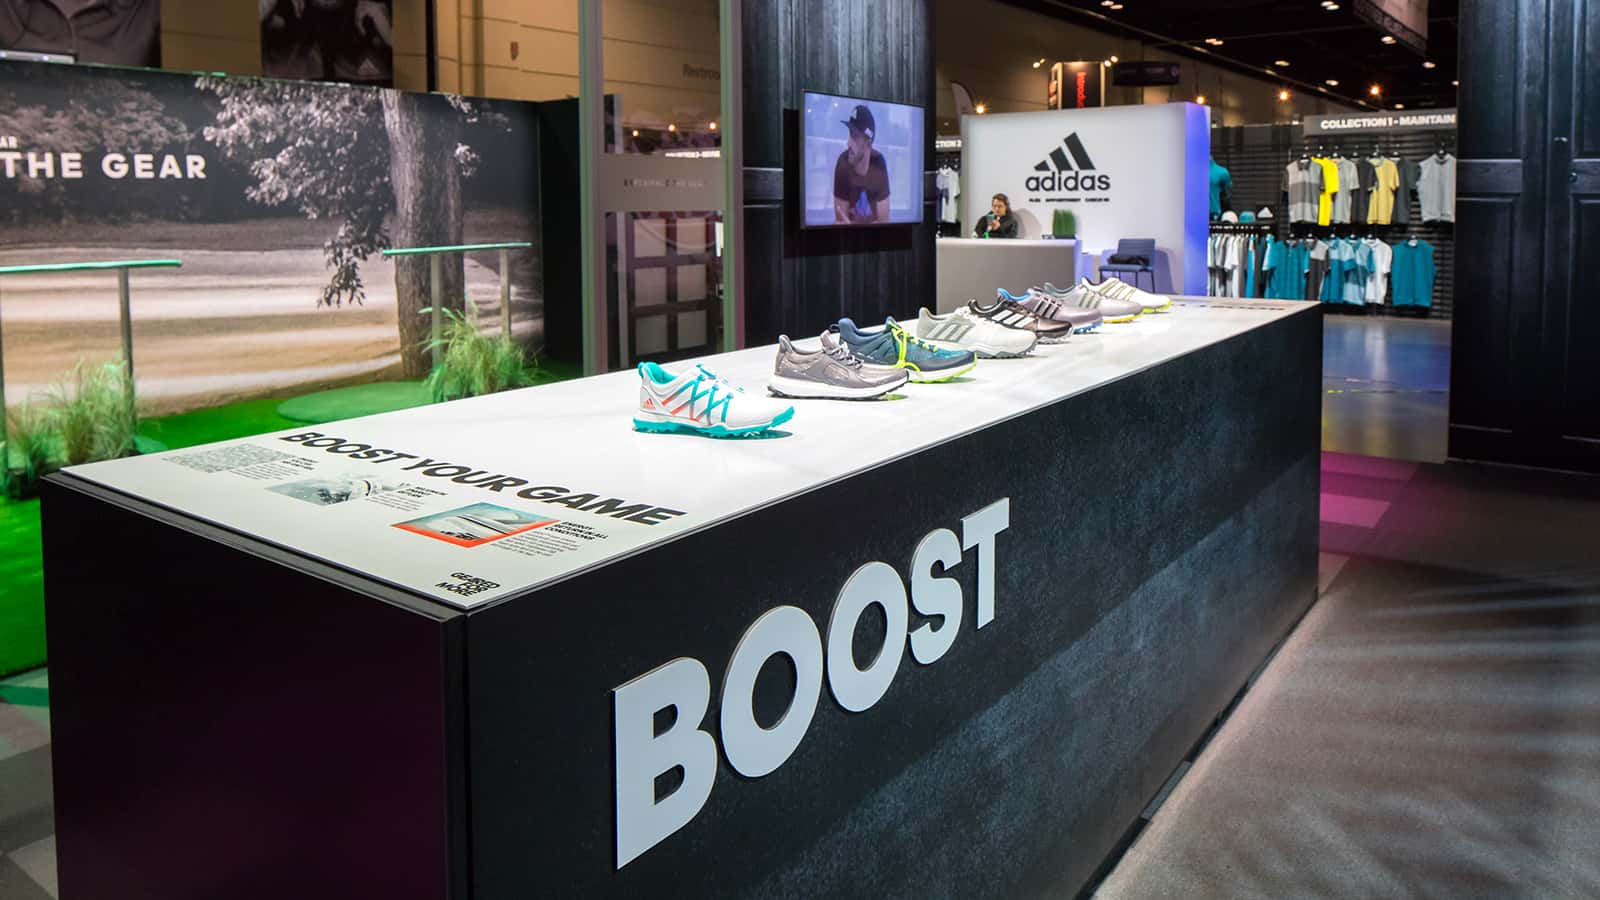 Detail view of the Boost retail zone at the adidas Golf PGA Merchandise Show 2017 experience.